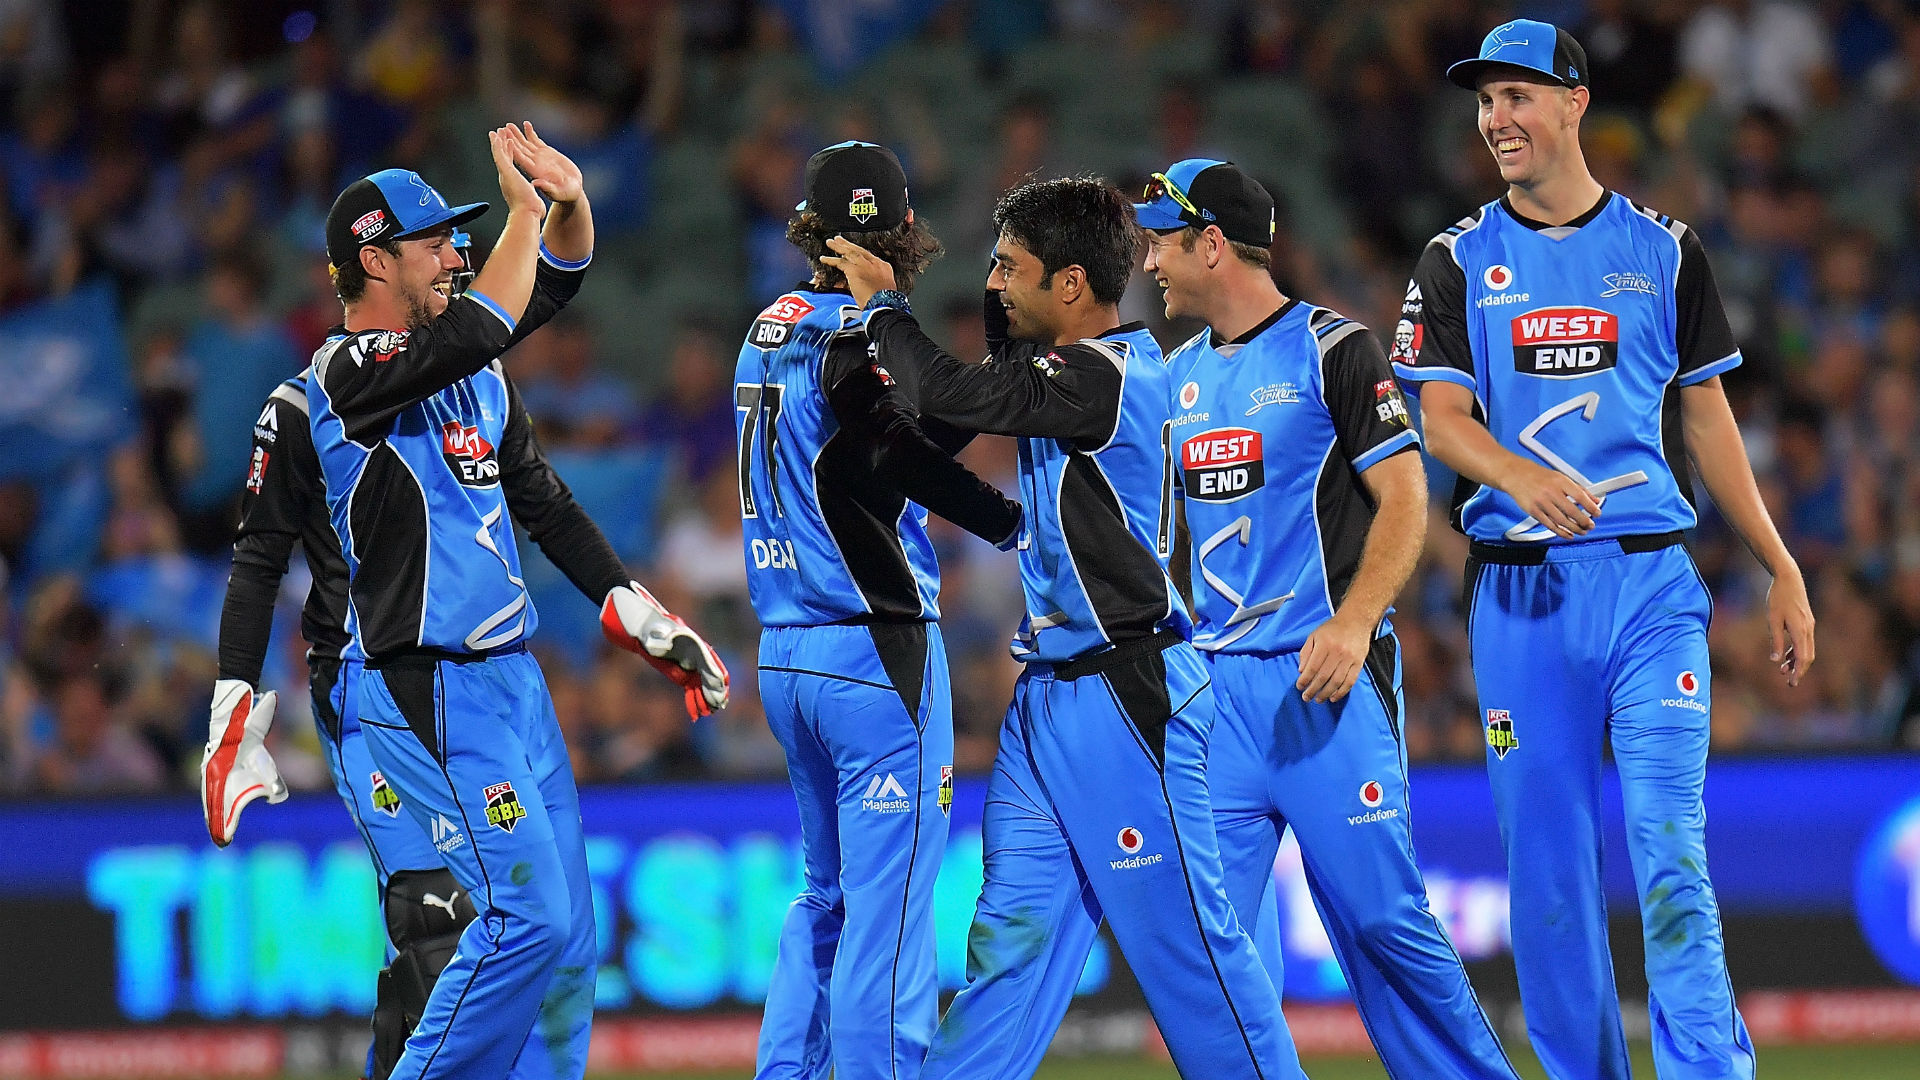 Afghanistan's Rashid Khan shines for Adelaide Strikers in Big Bash League